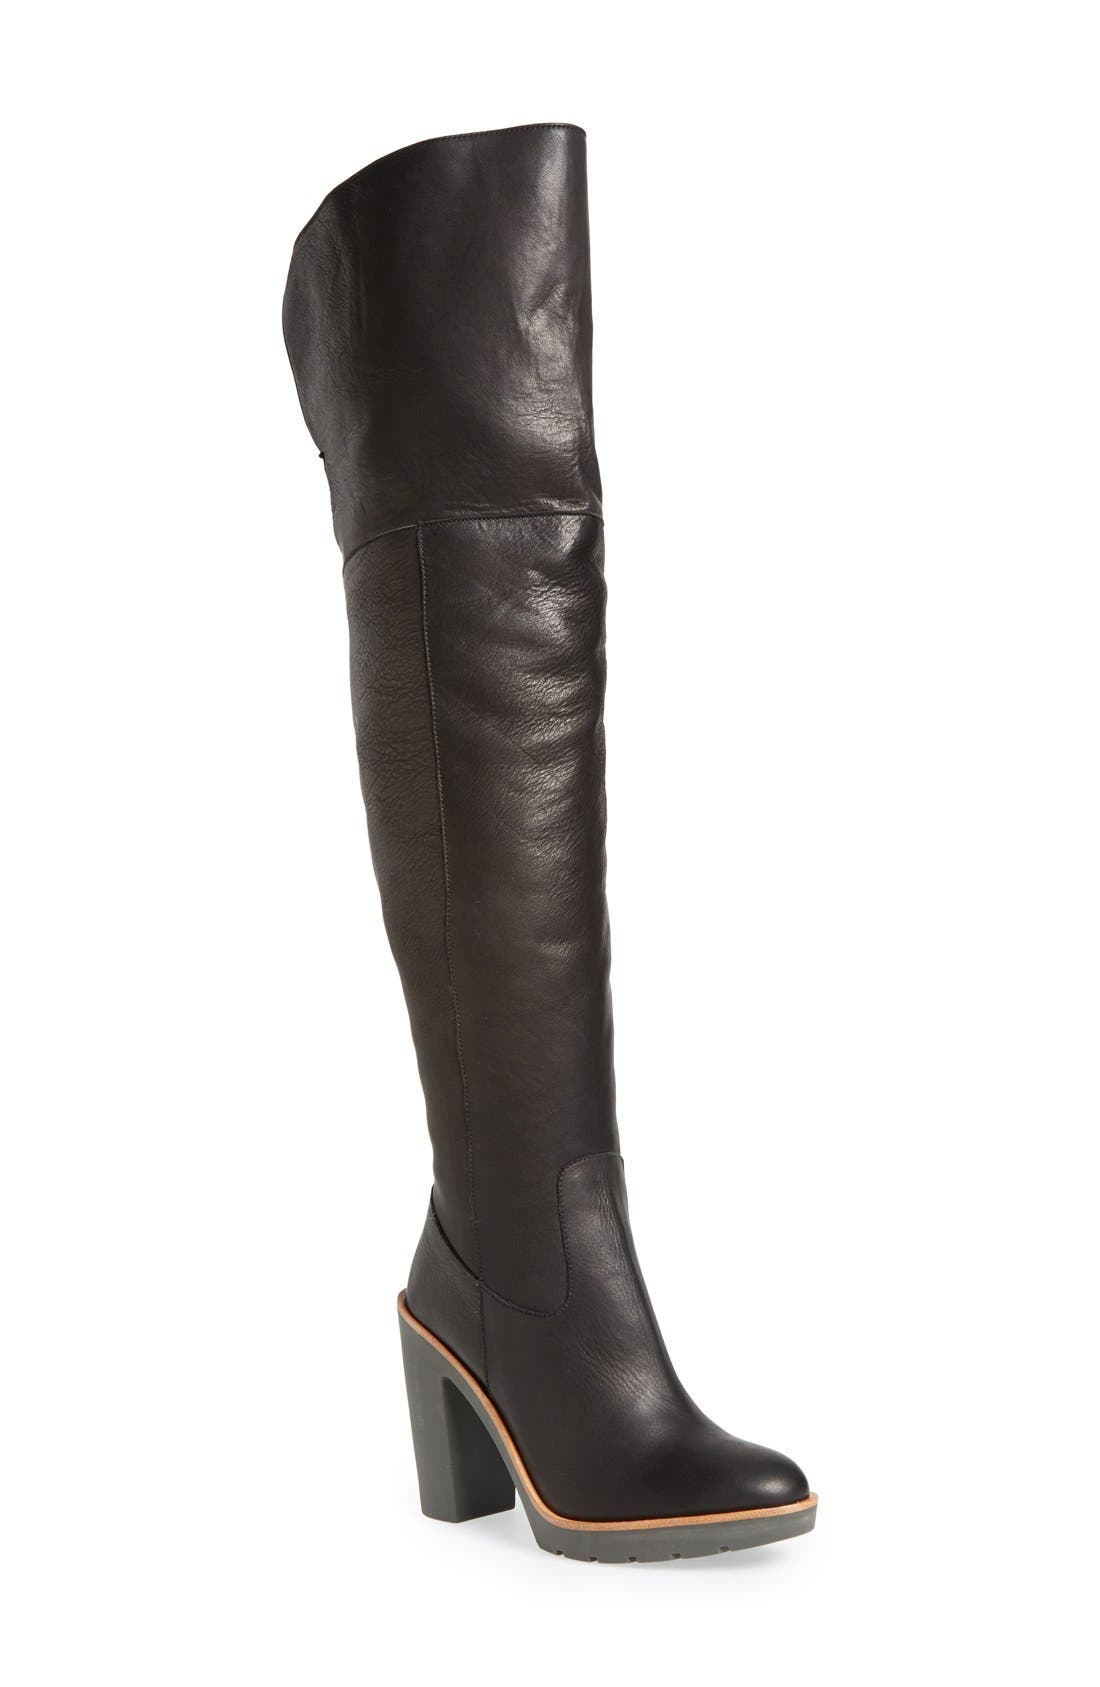 Main Image - kate spade new york 'gabby' genuine shearling lined over the knee boot (Women)